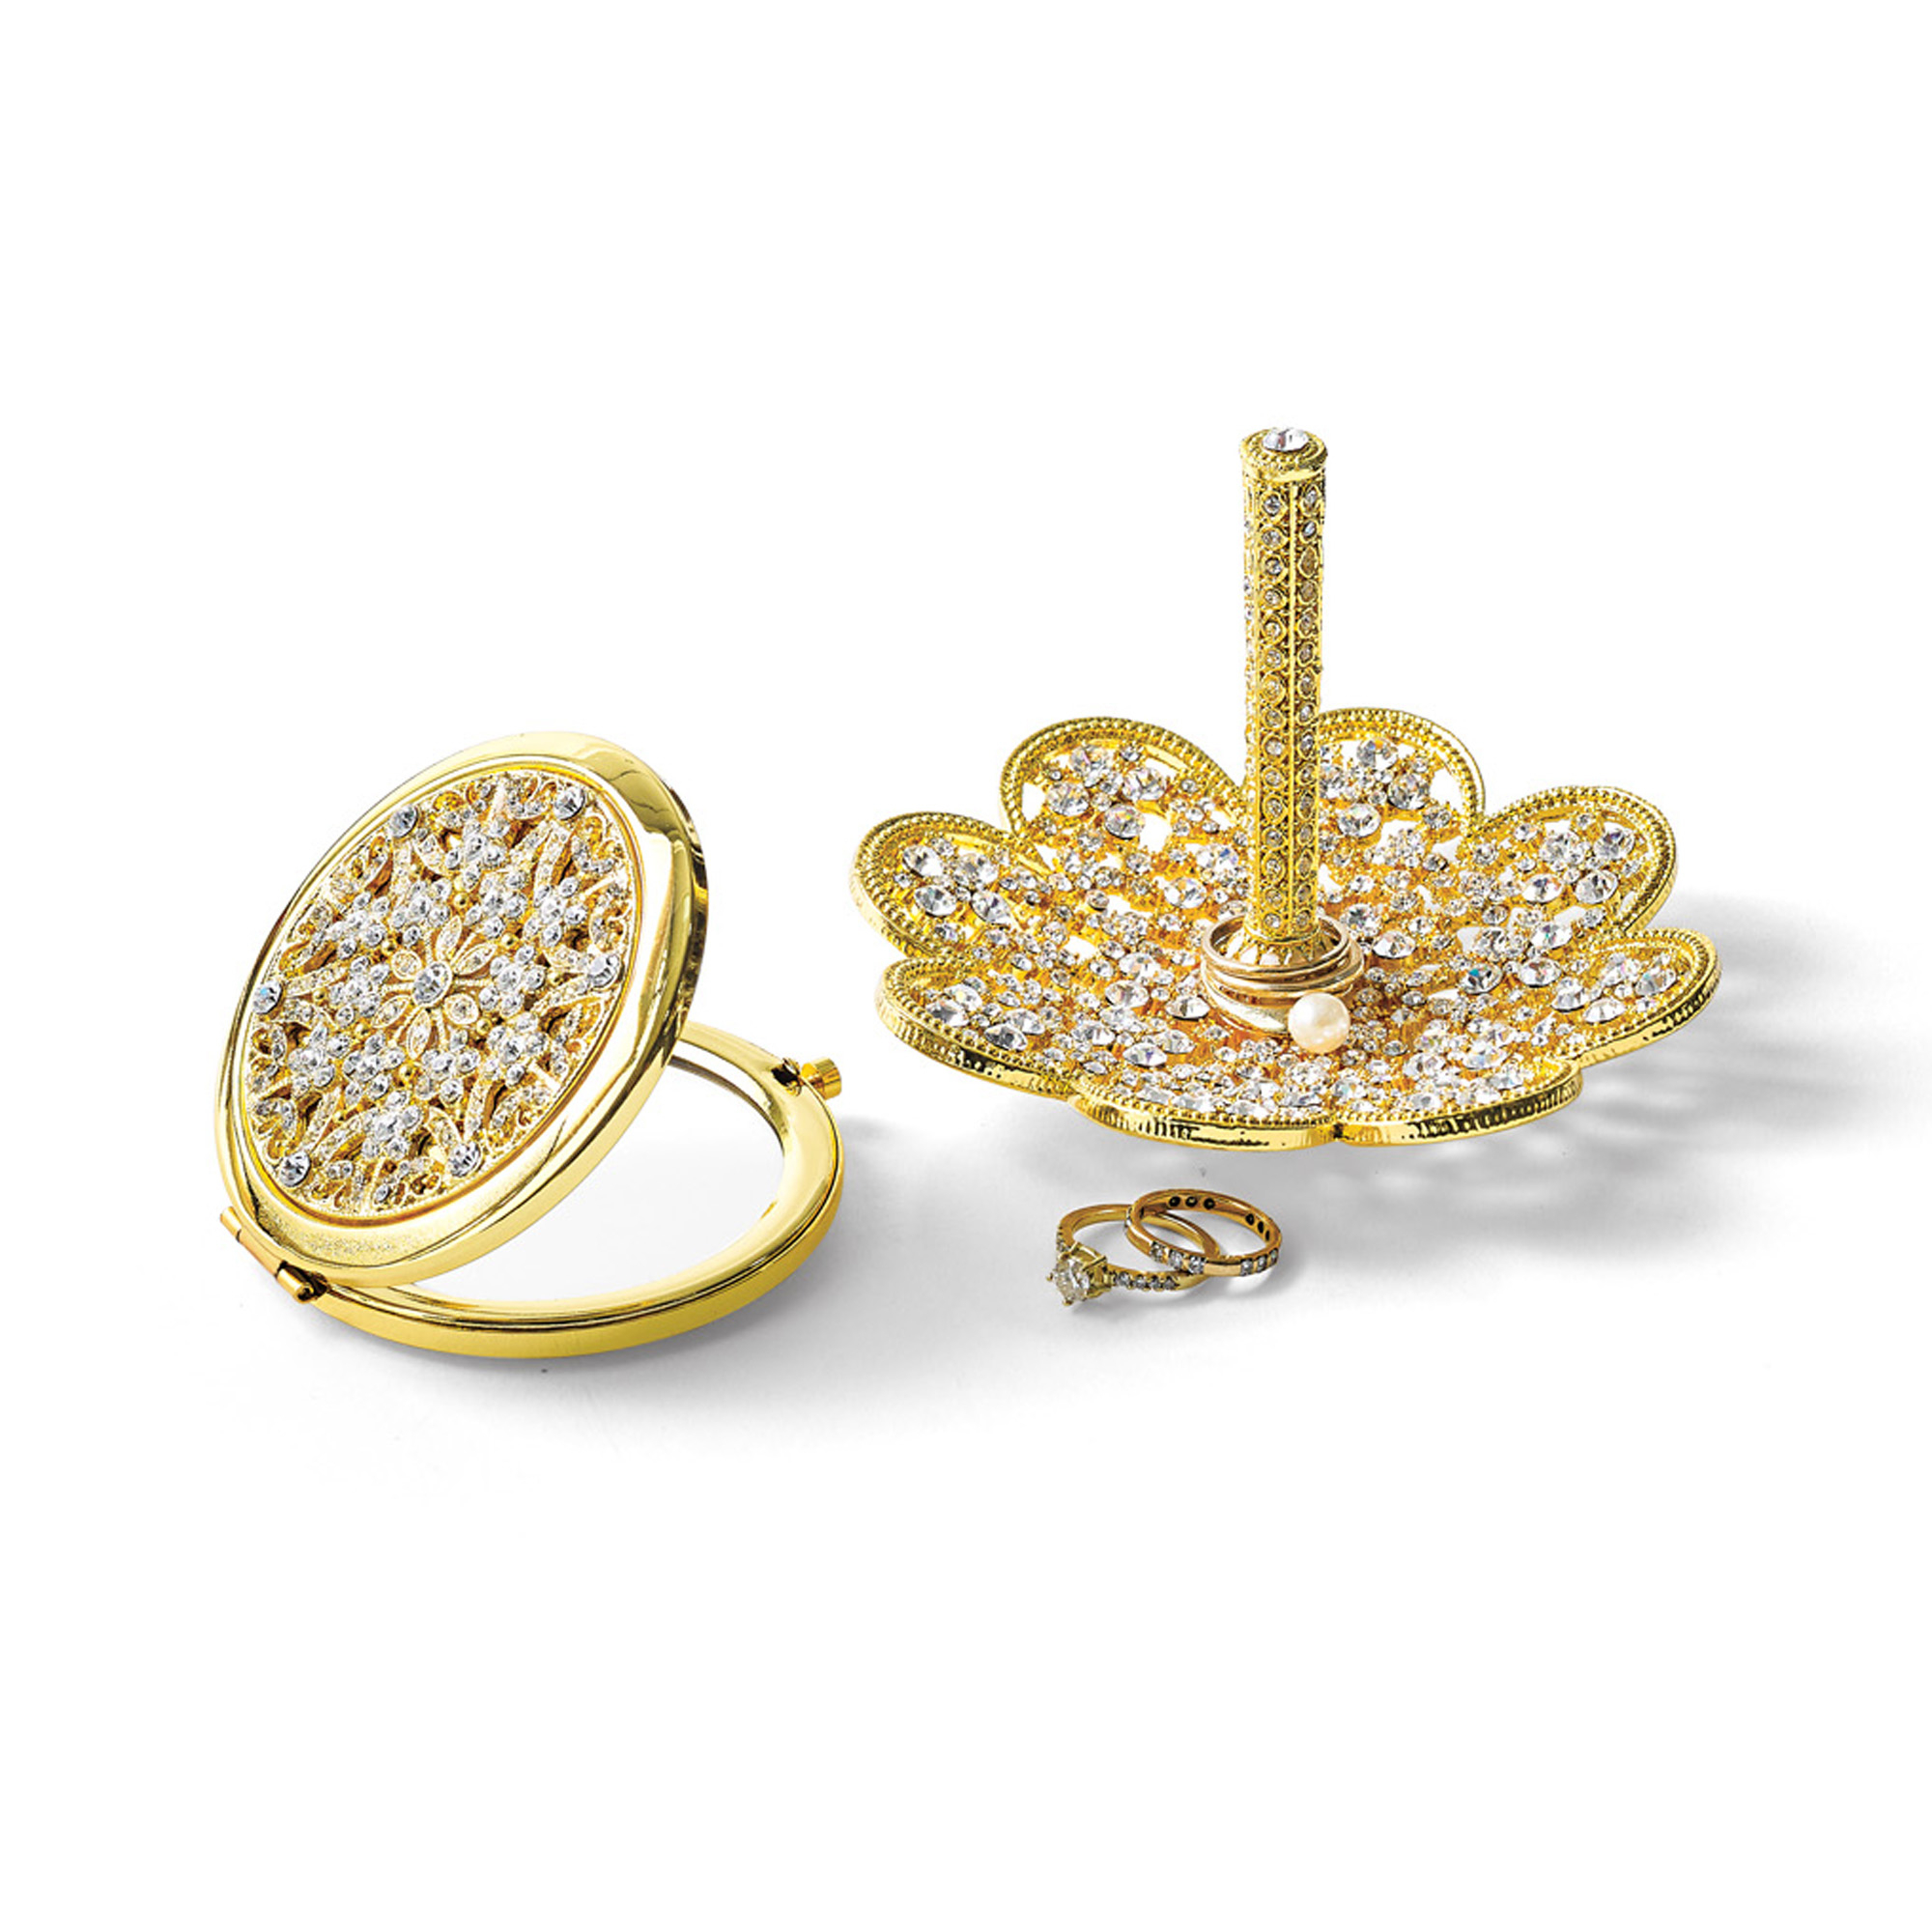 Swarovski Compact & Ring Holder